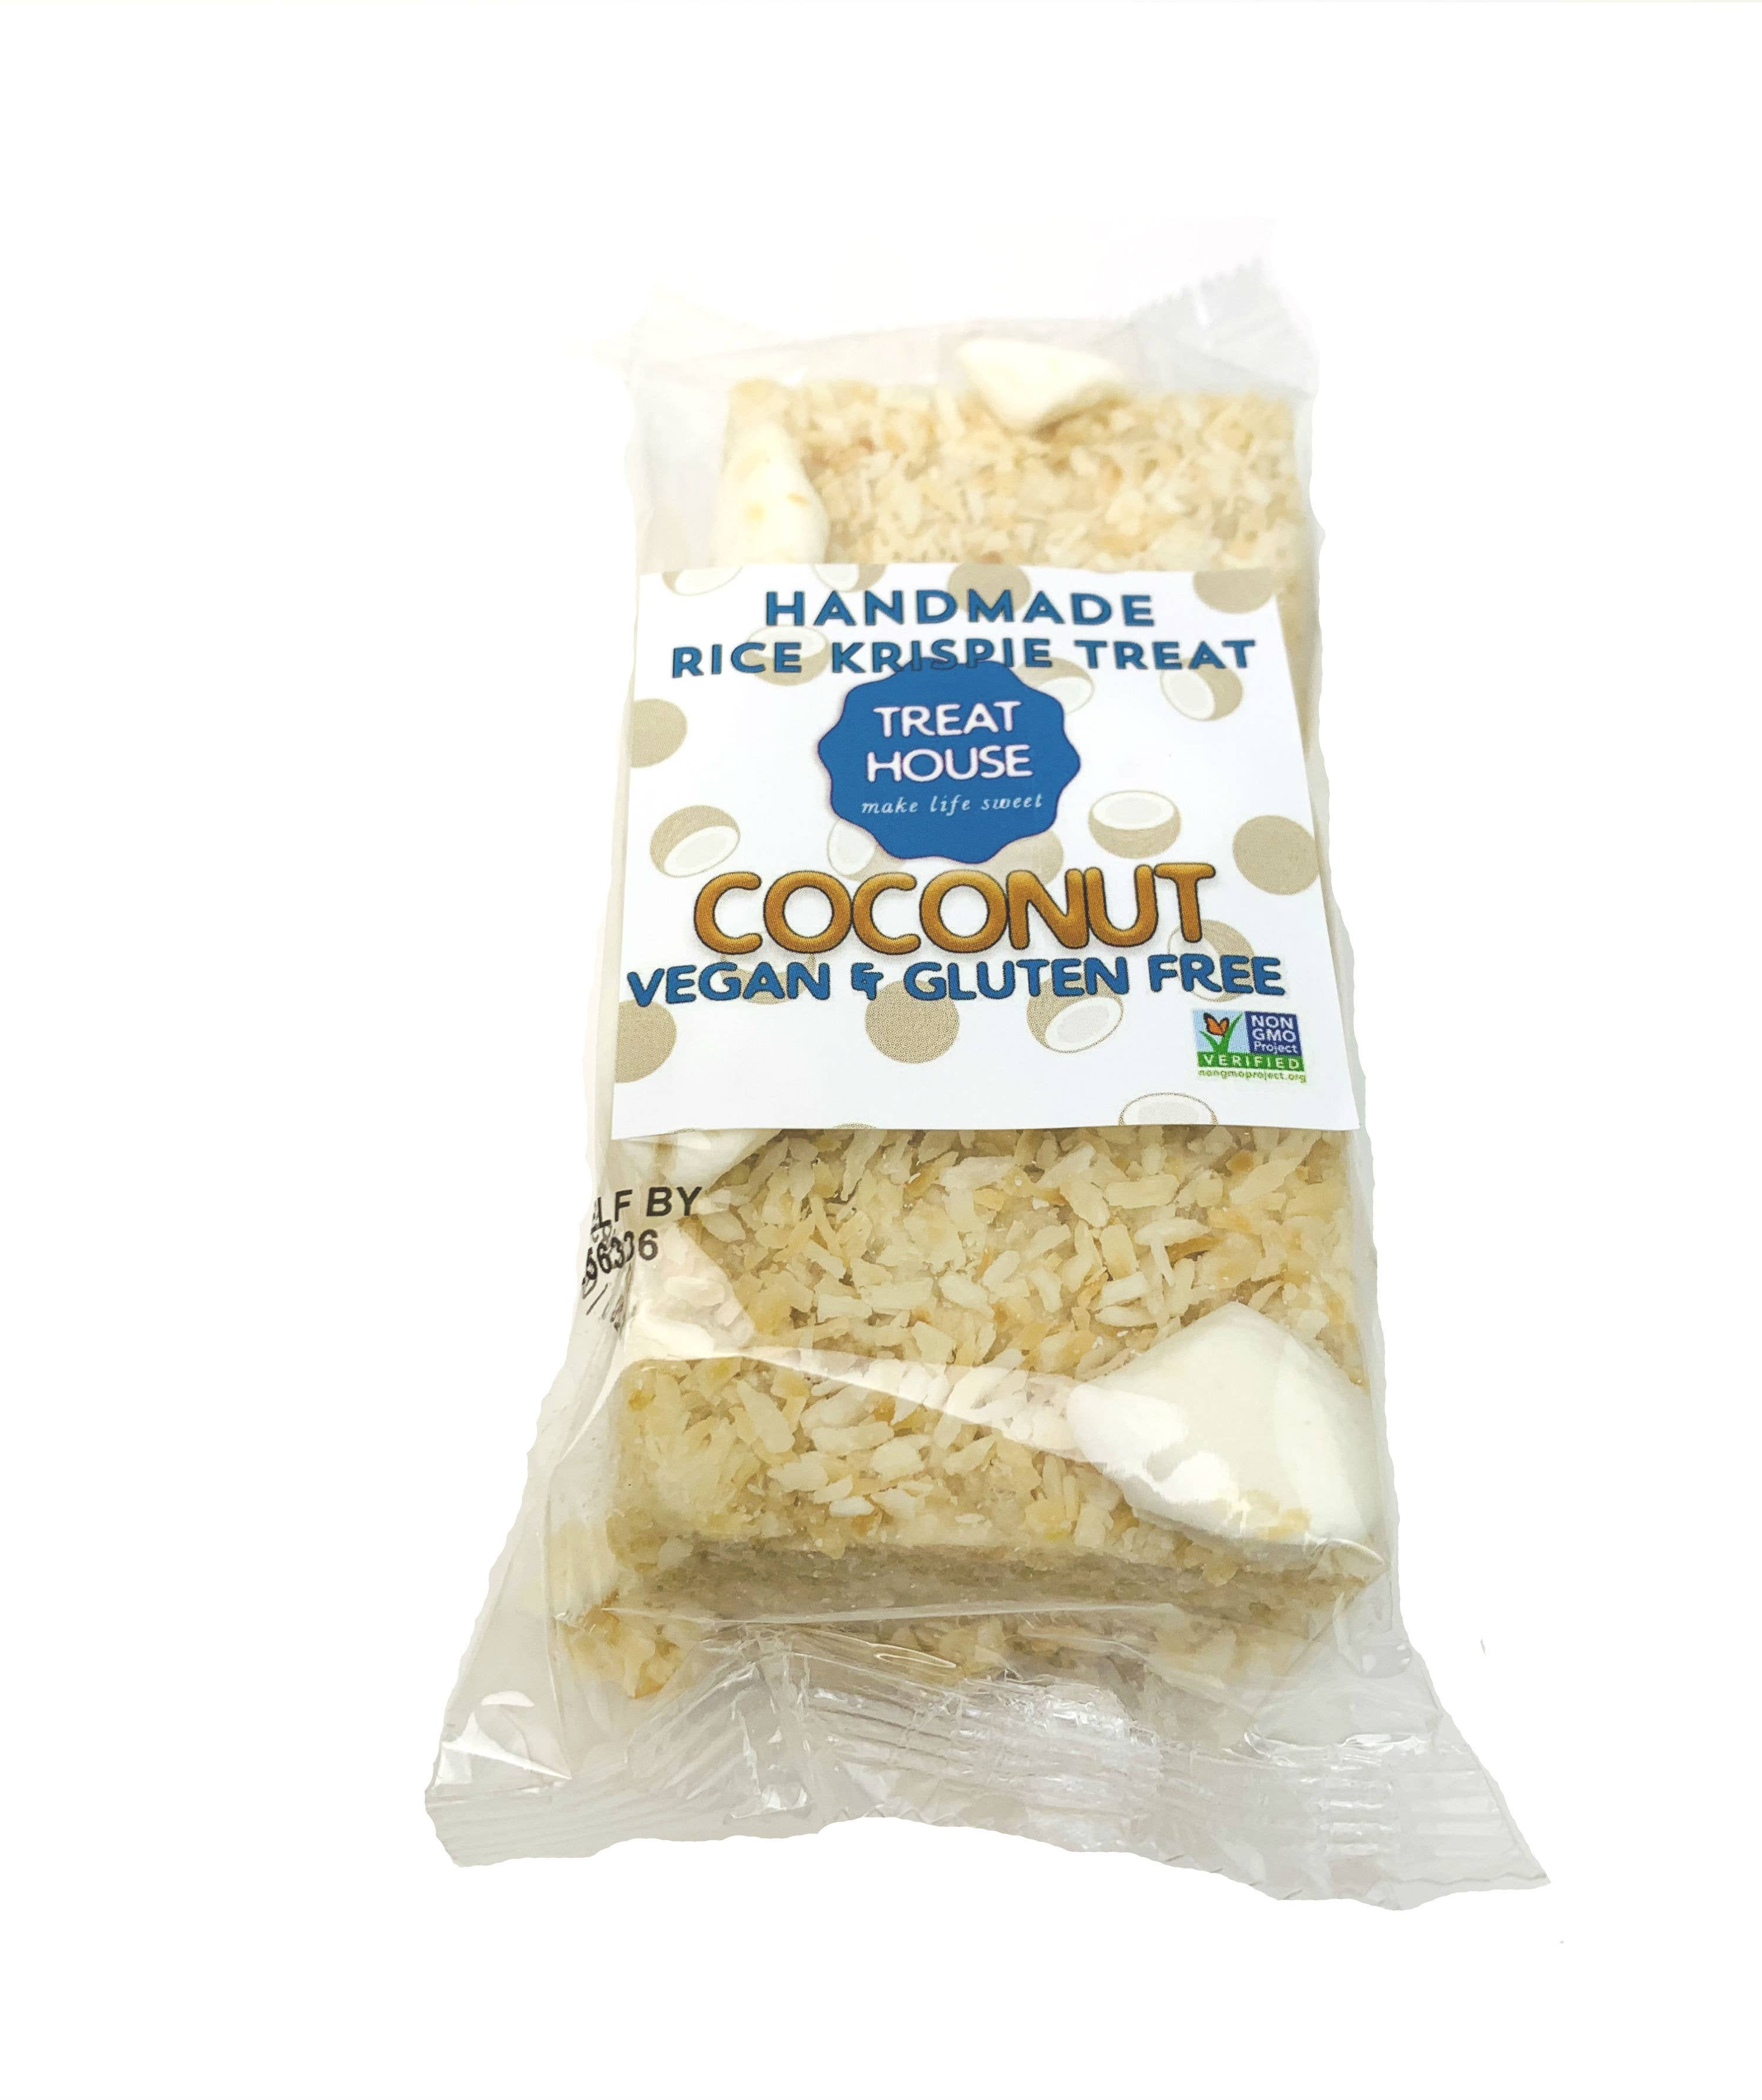 Toasted Coconut Vegan, Gluten Free, Dairy Free, and Non-GMO